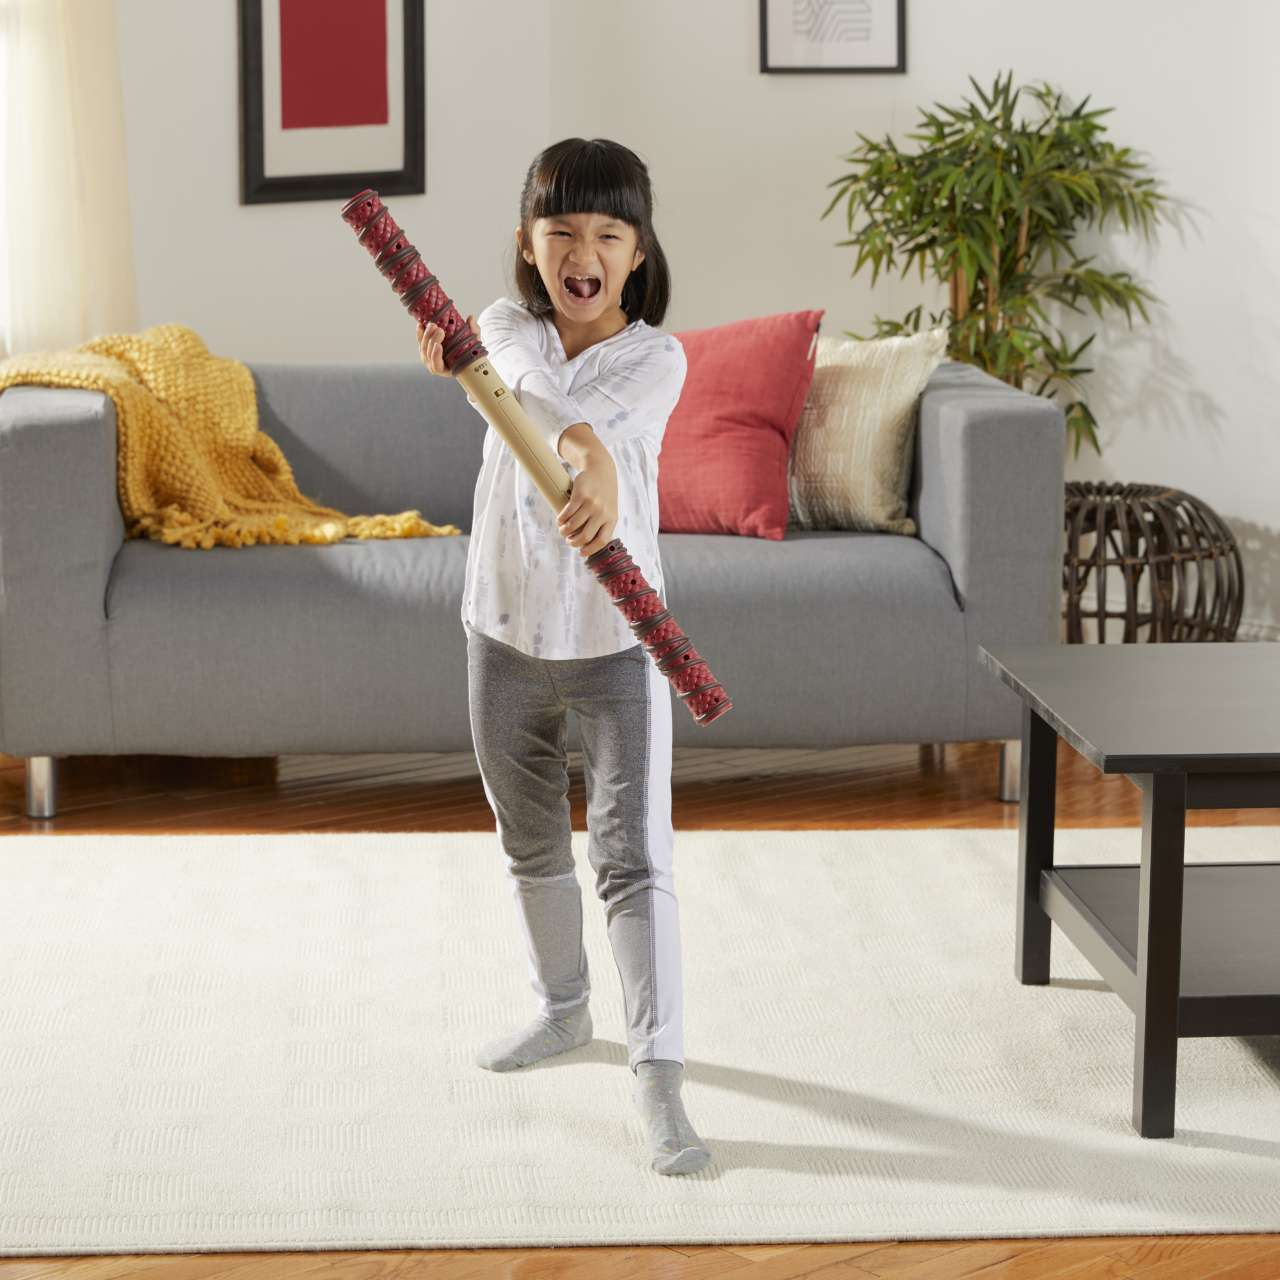 MARVEL SHANG-CHI AND THE LEGEND OF THE TEN RINGS BATTLE FX BO STAFF - lifestyle (3)